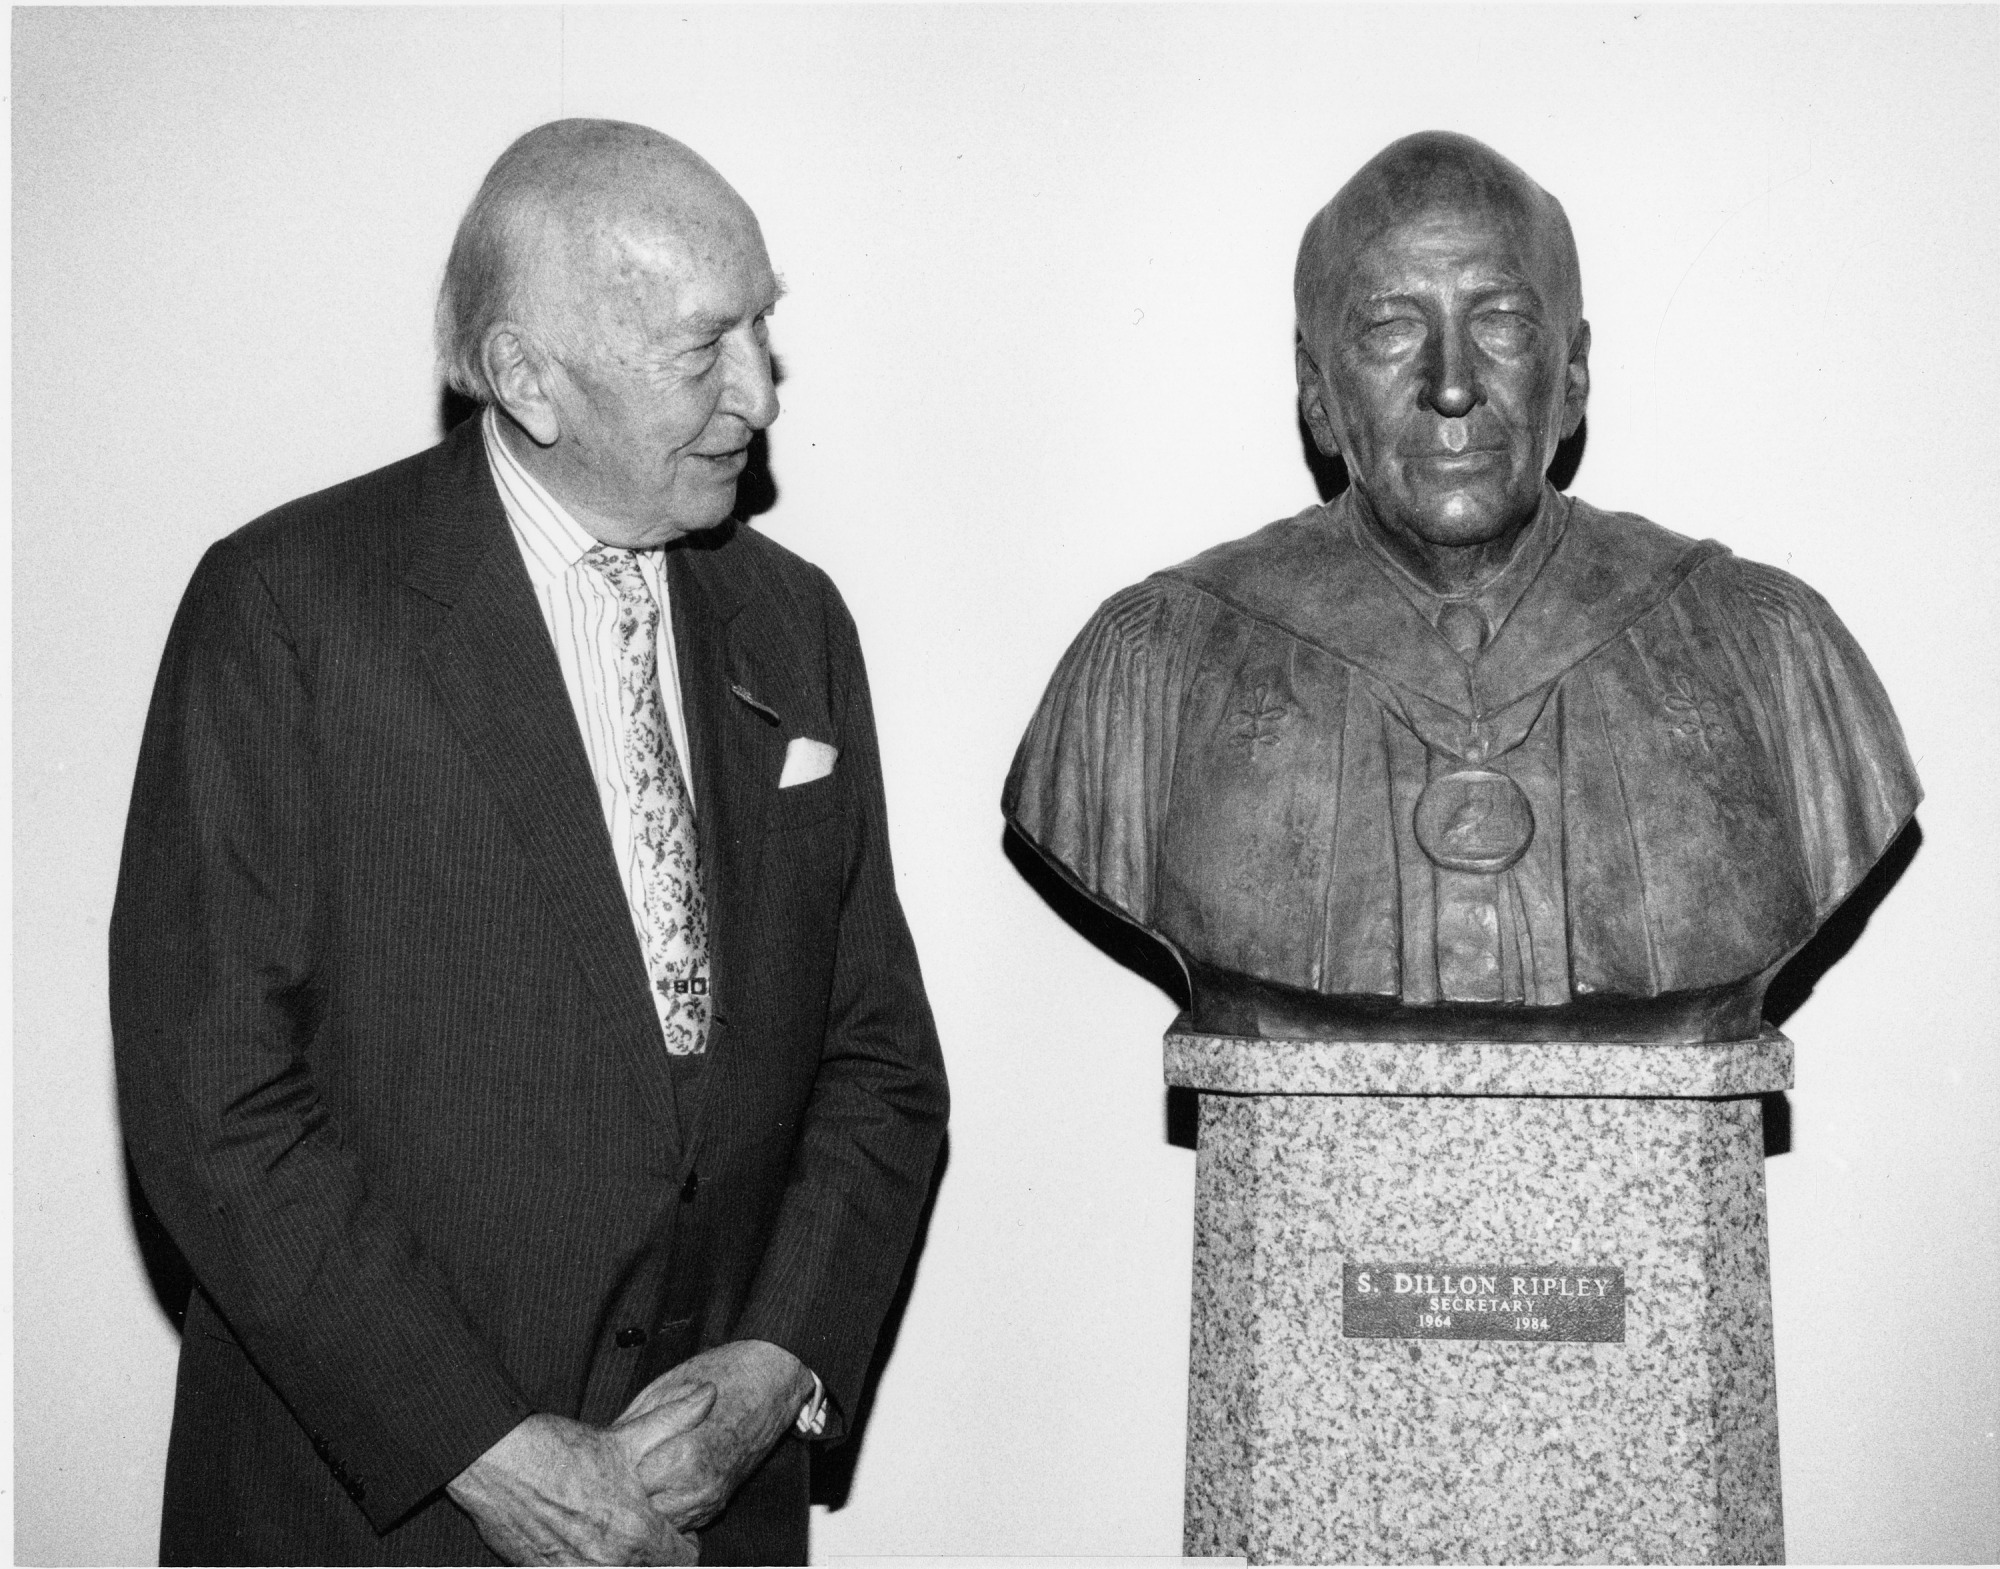 S. Dillon Ripley Honored with Sculpture